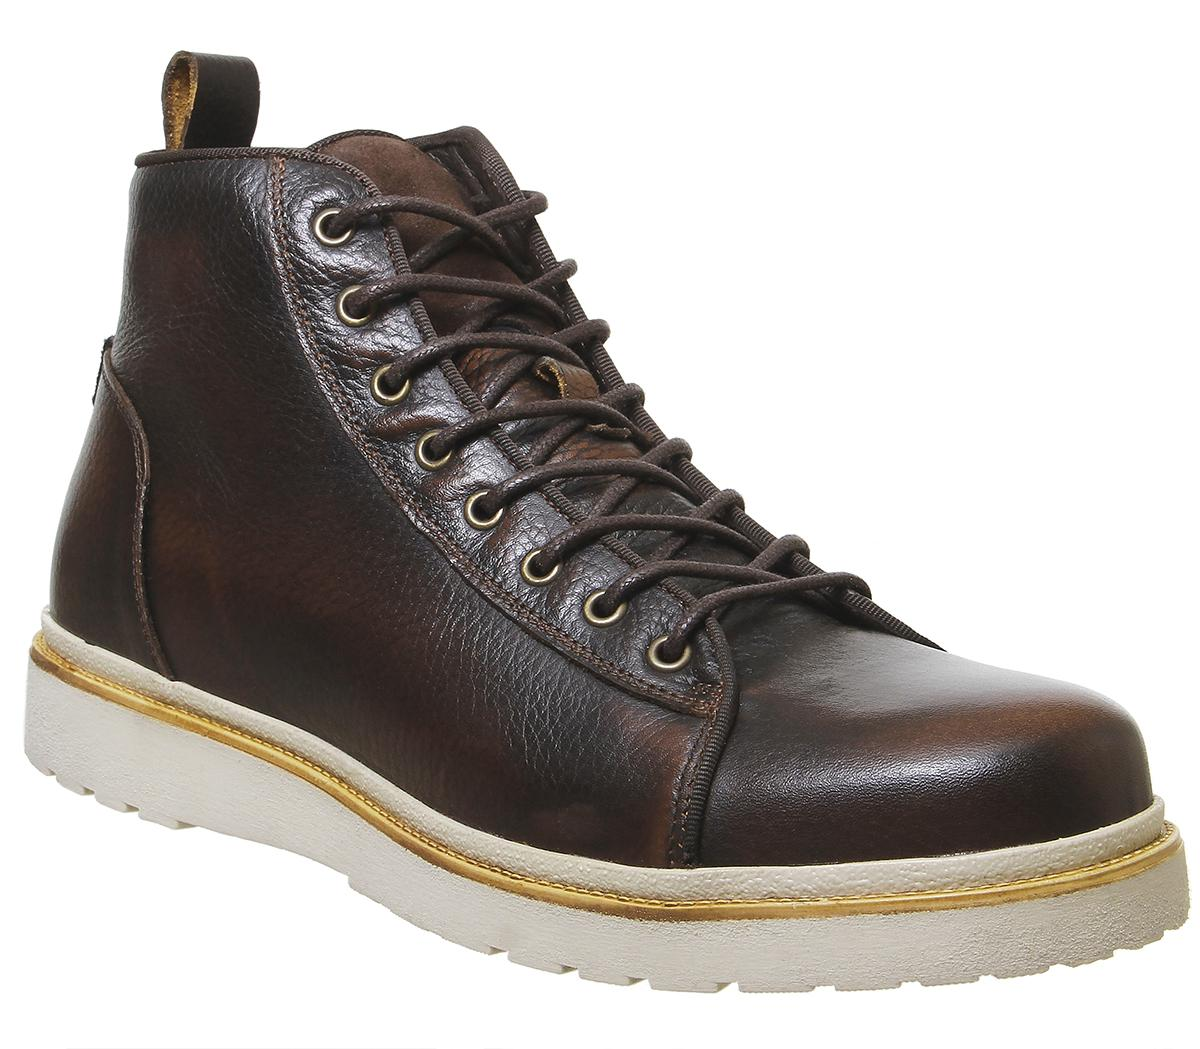 Boone Boots